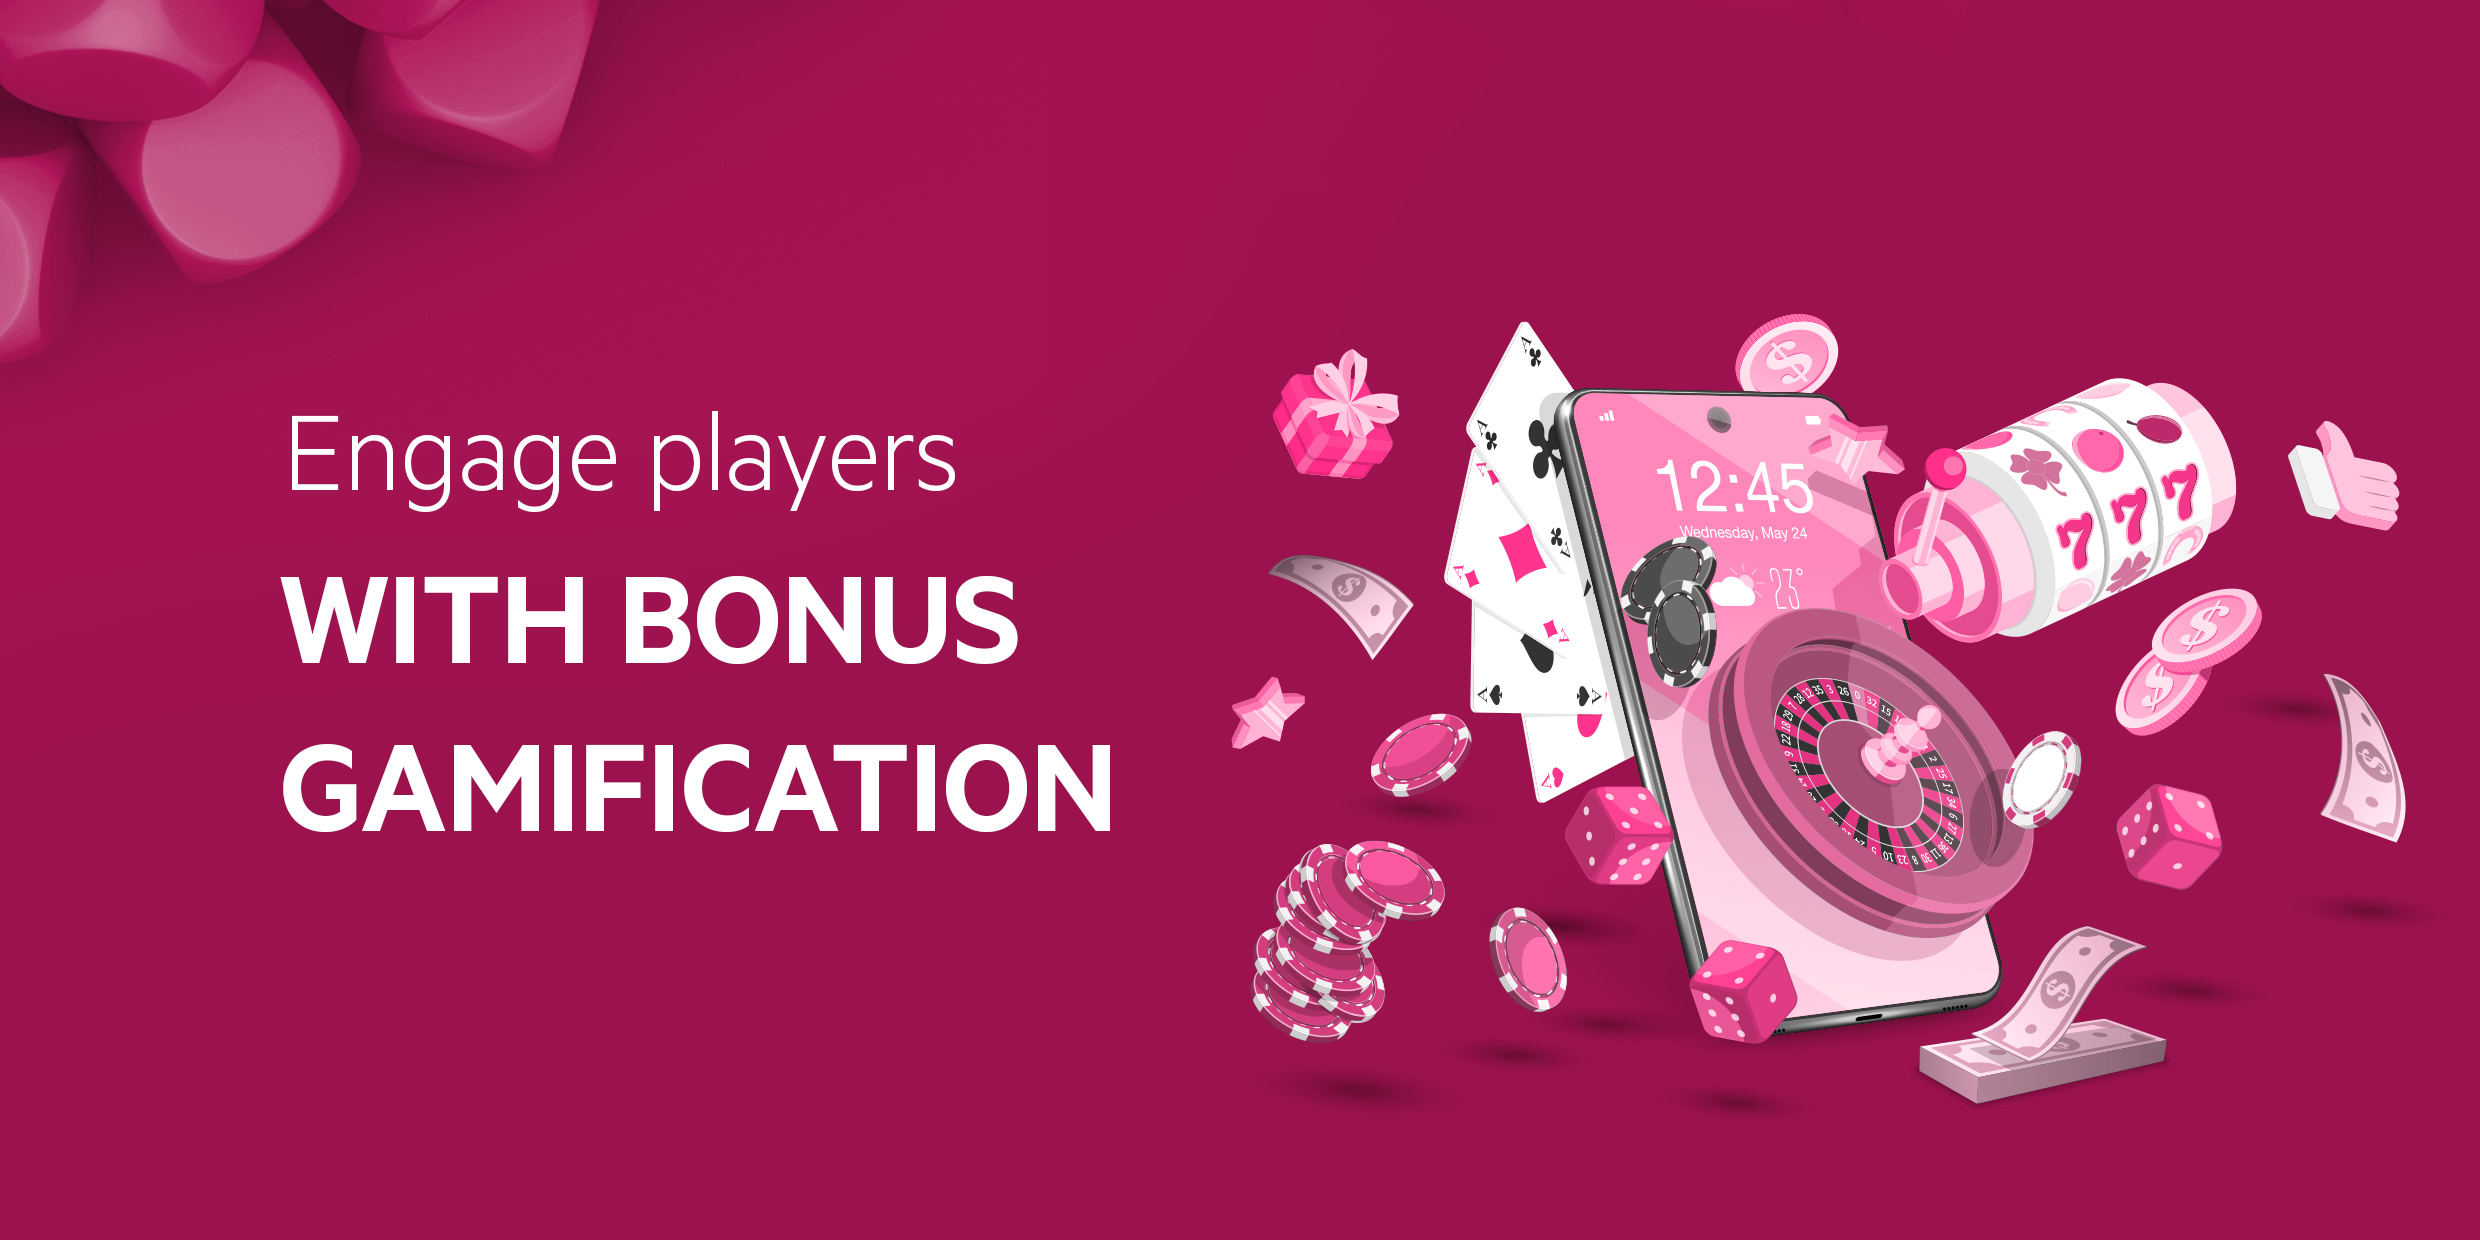 Abstract image with text Engage players with bonus gamification